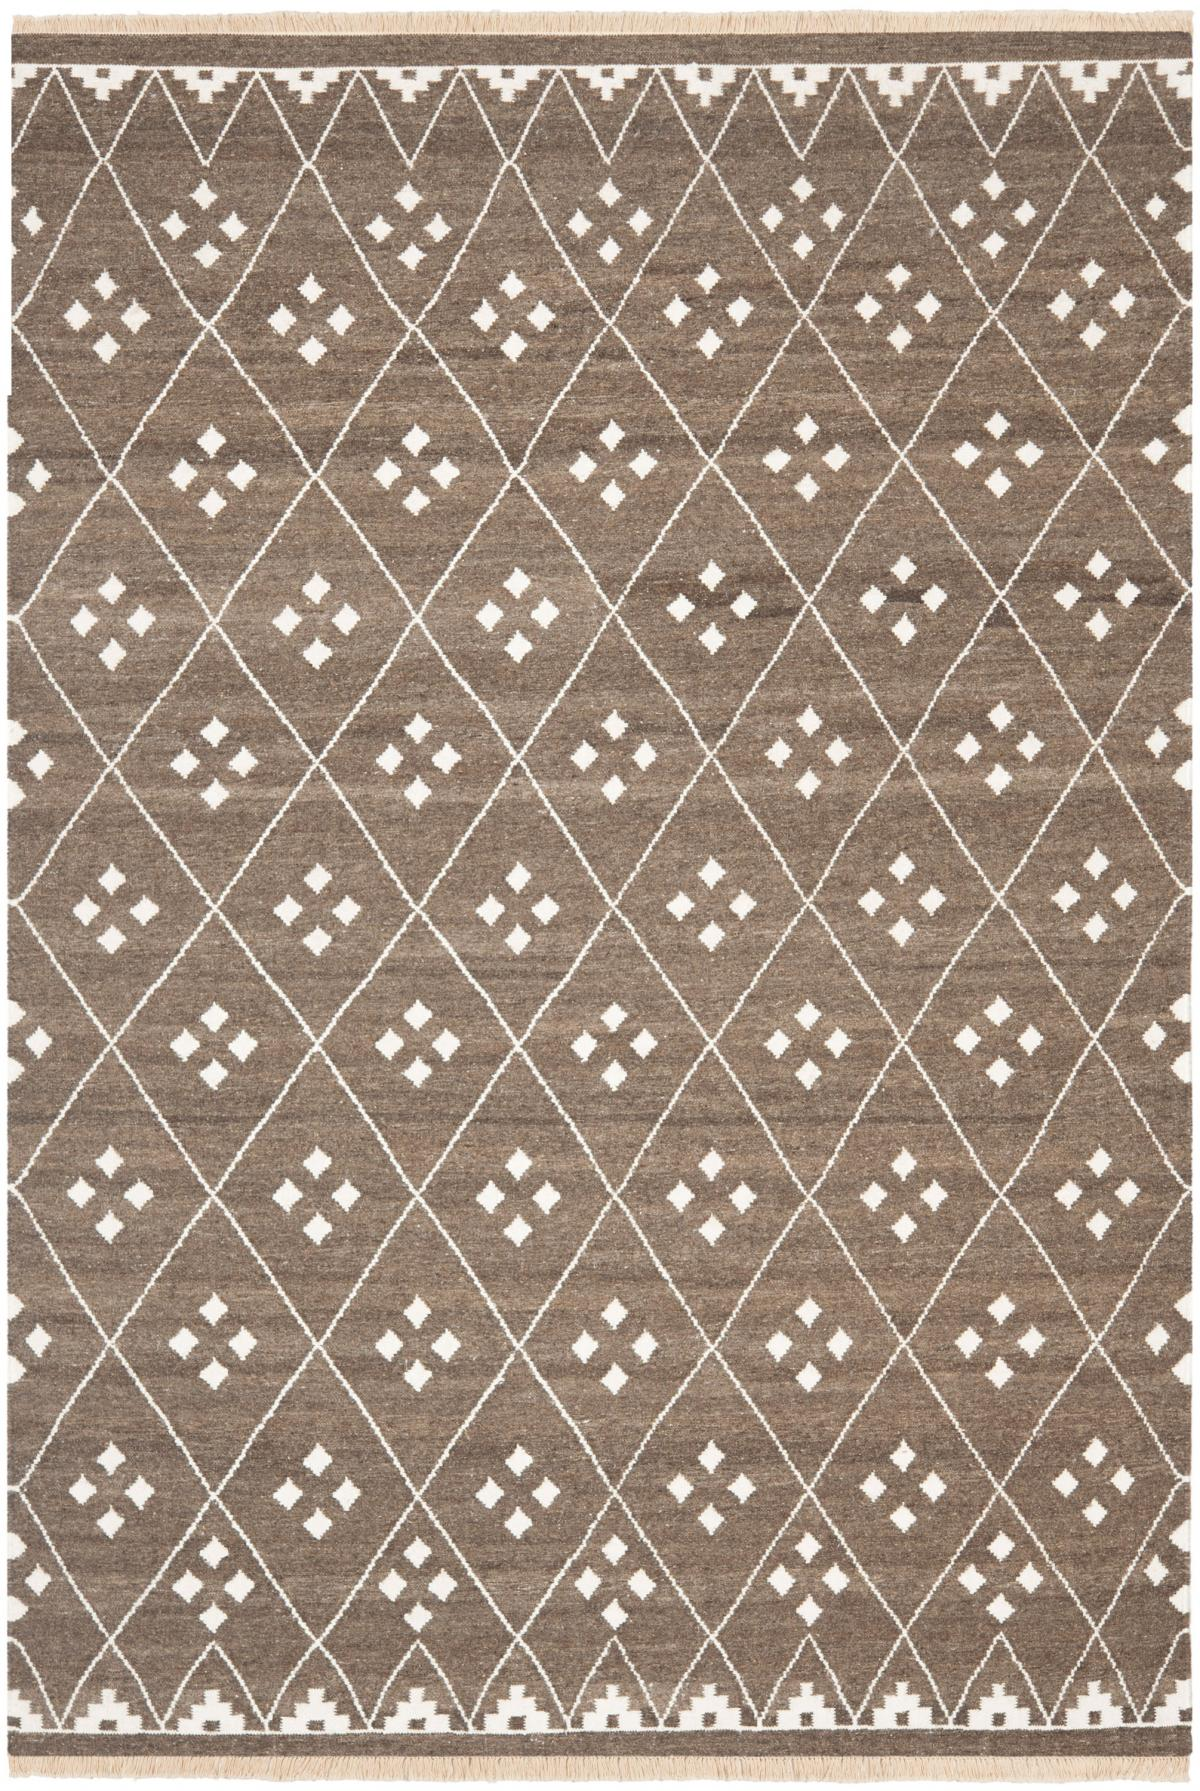 Rug Nkm316a Kilim Area Rugs By Safavieh